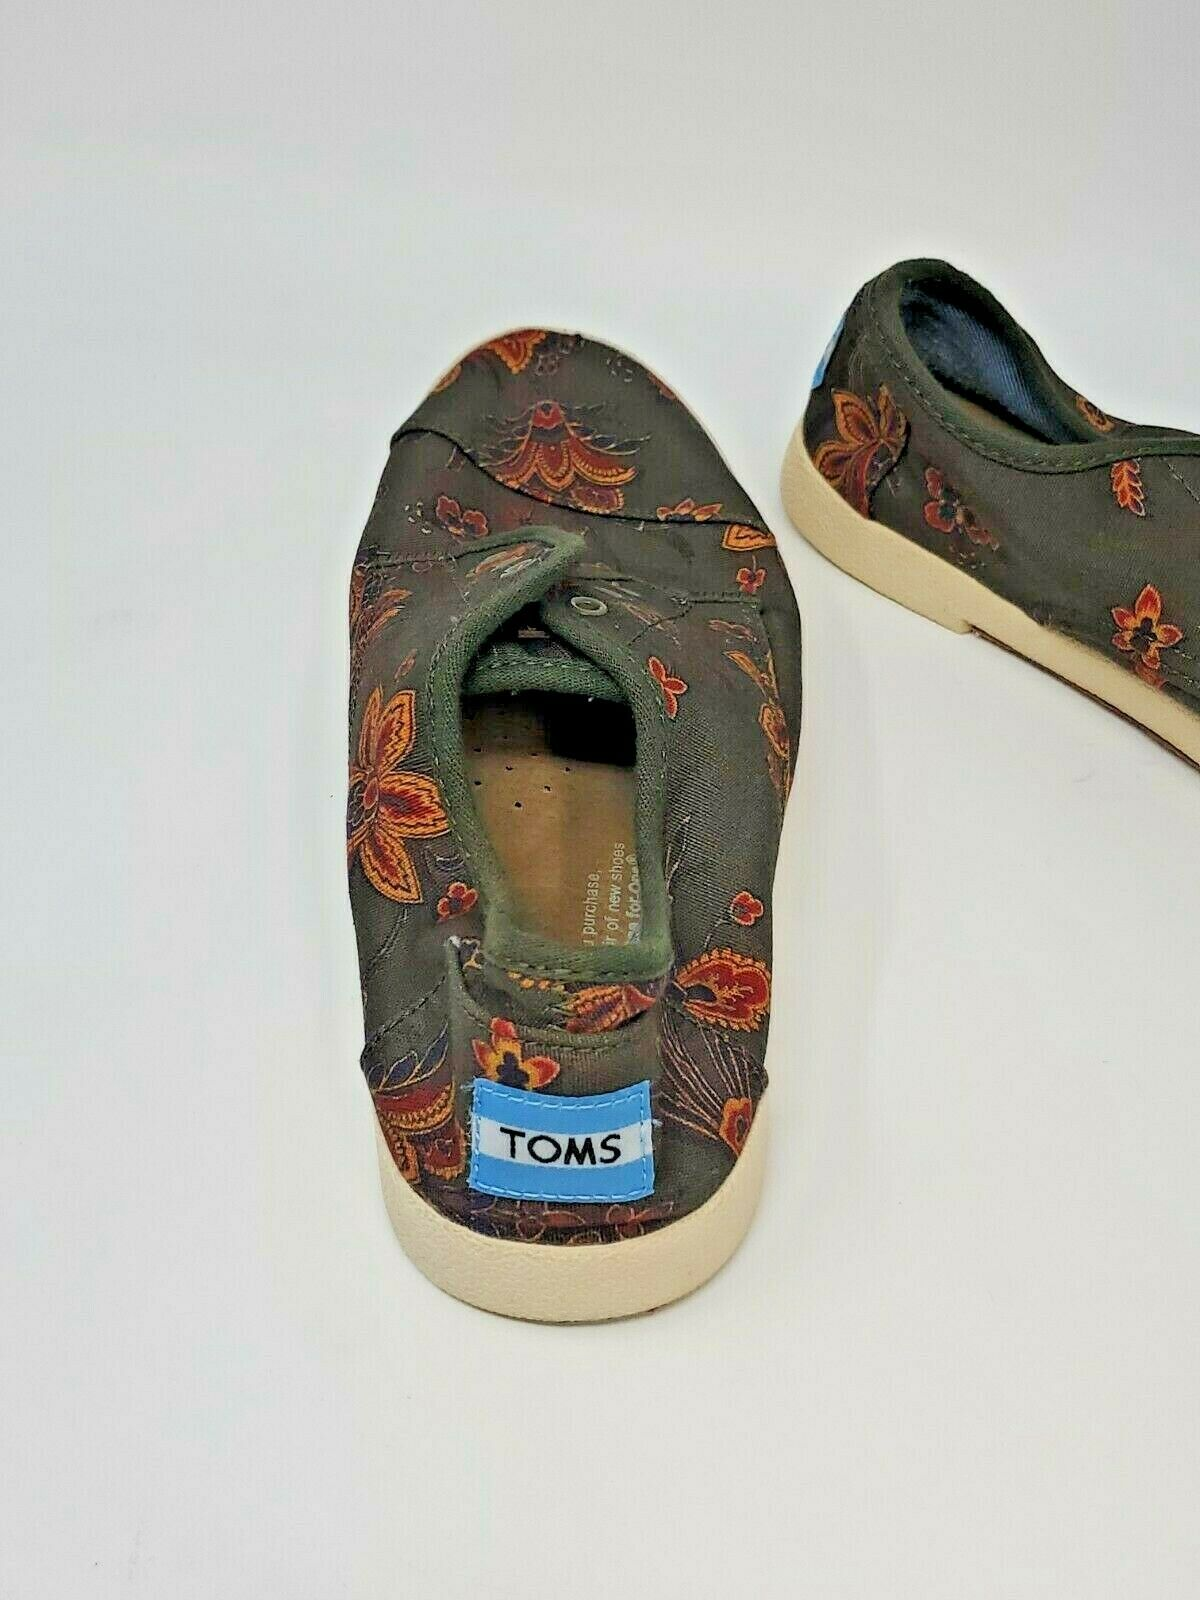 Toms Woman's Denim Sneakers Canvas Green Lace Up Shoes Size W7